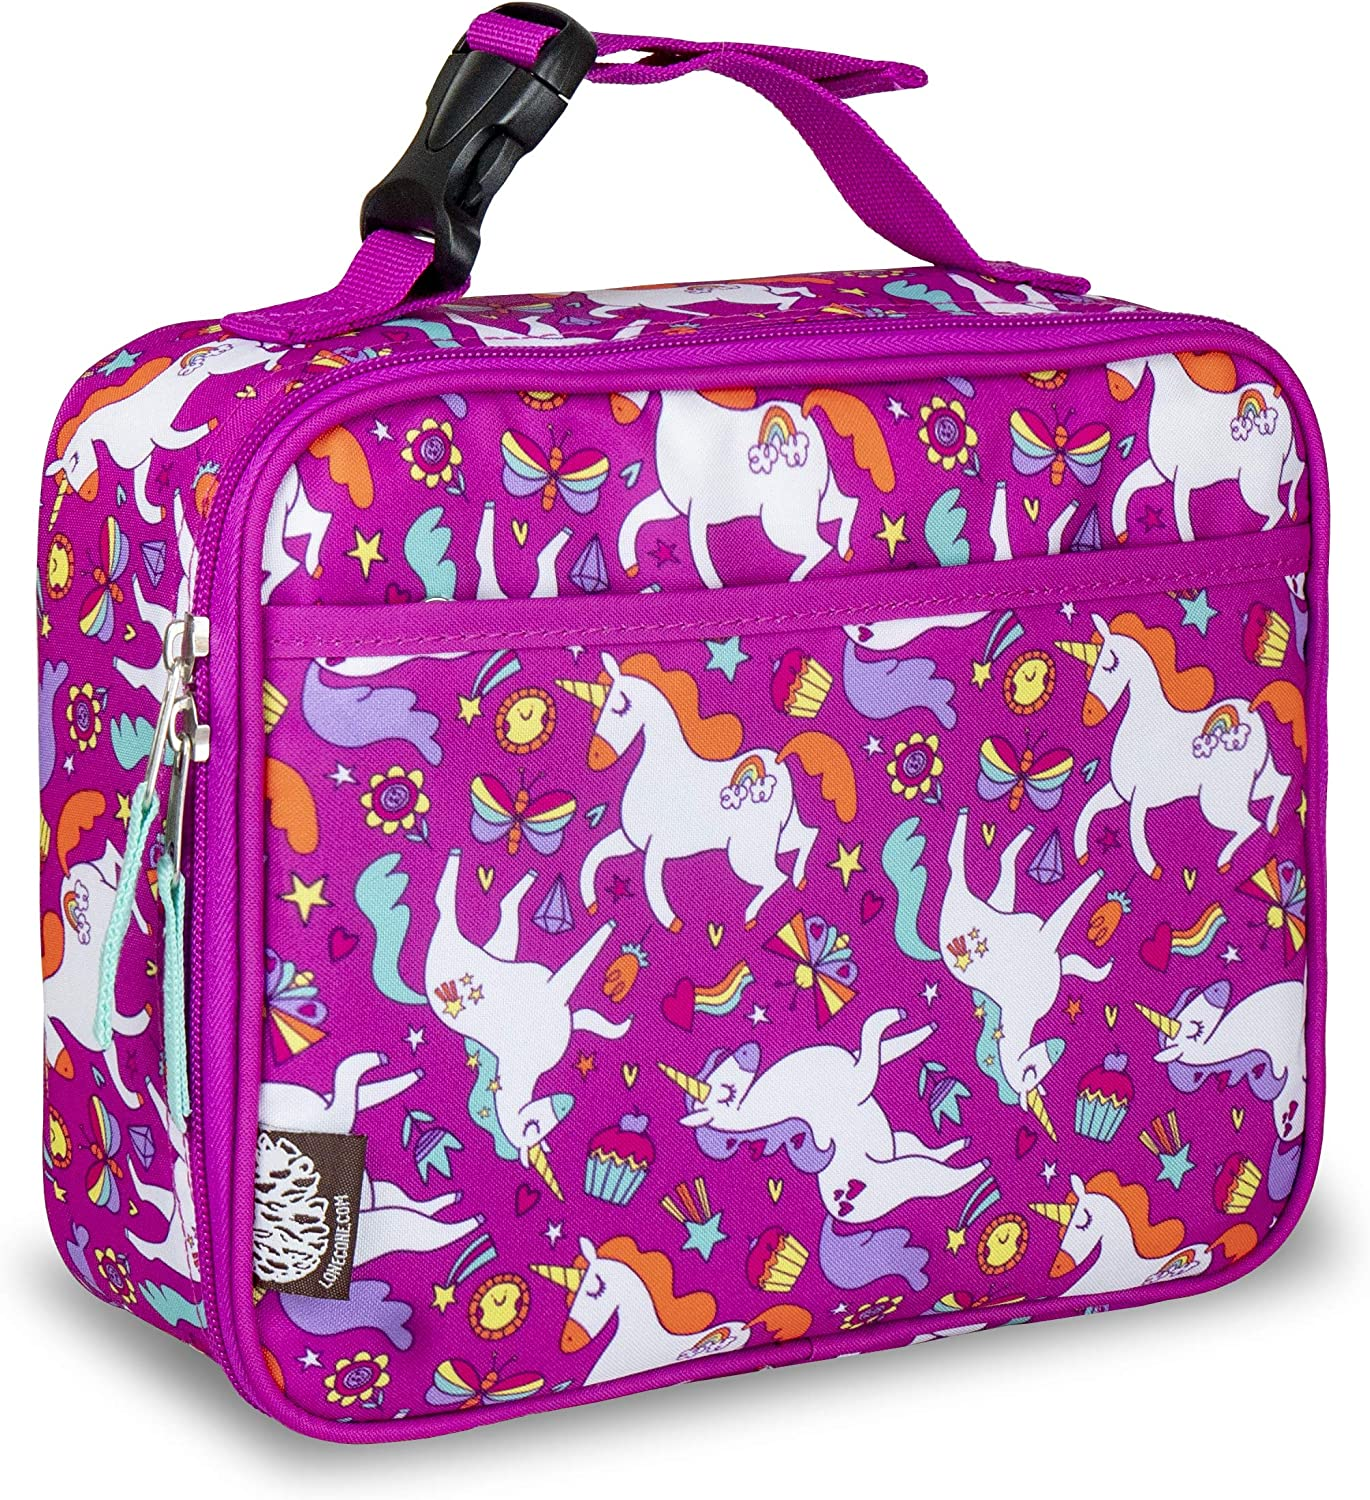 LONECONE Kids' Insulated Lunch Box - Cute Patterns for Boys and Girls, Mary the Unicorn, Standard